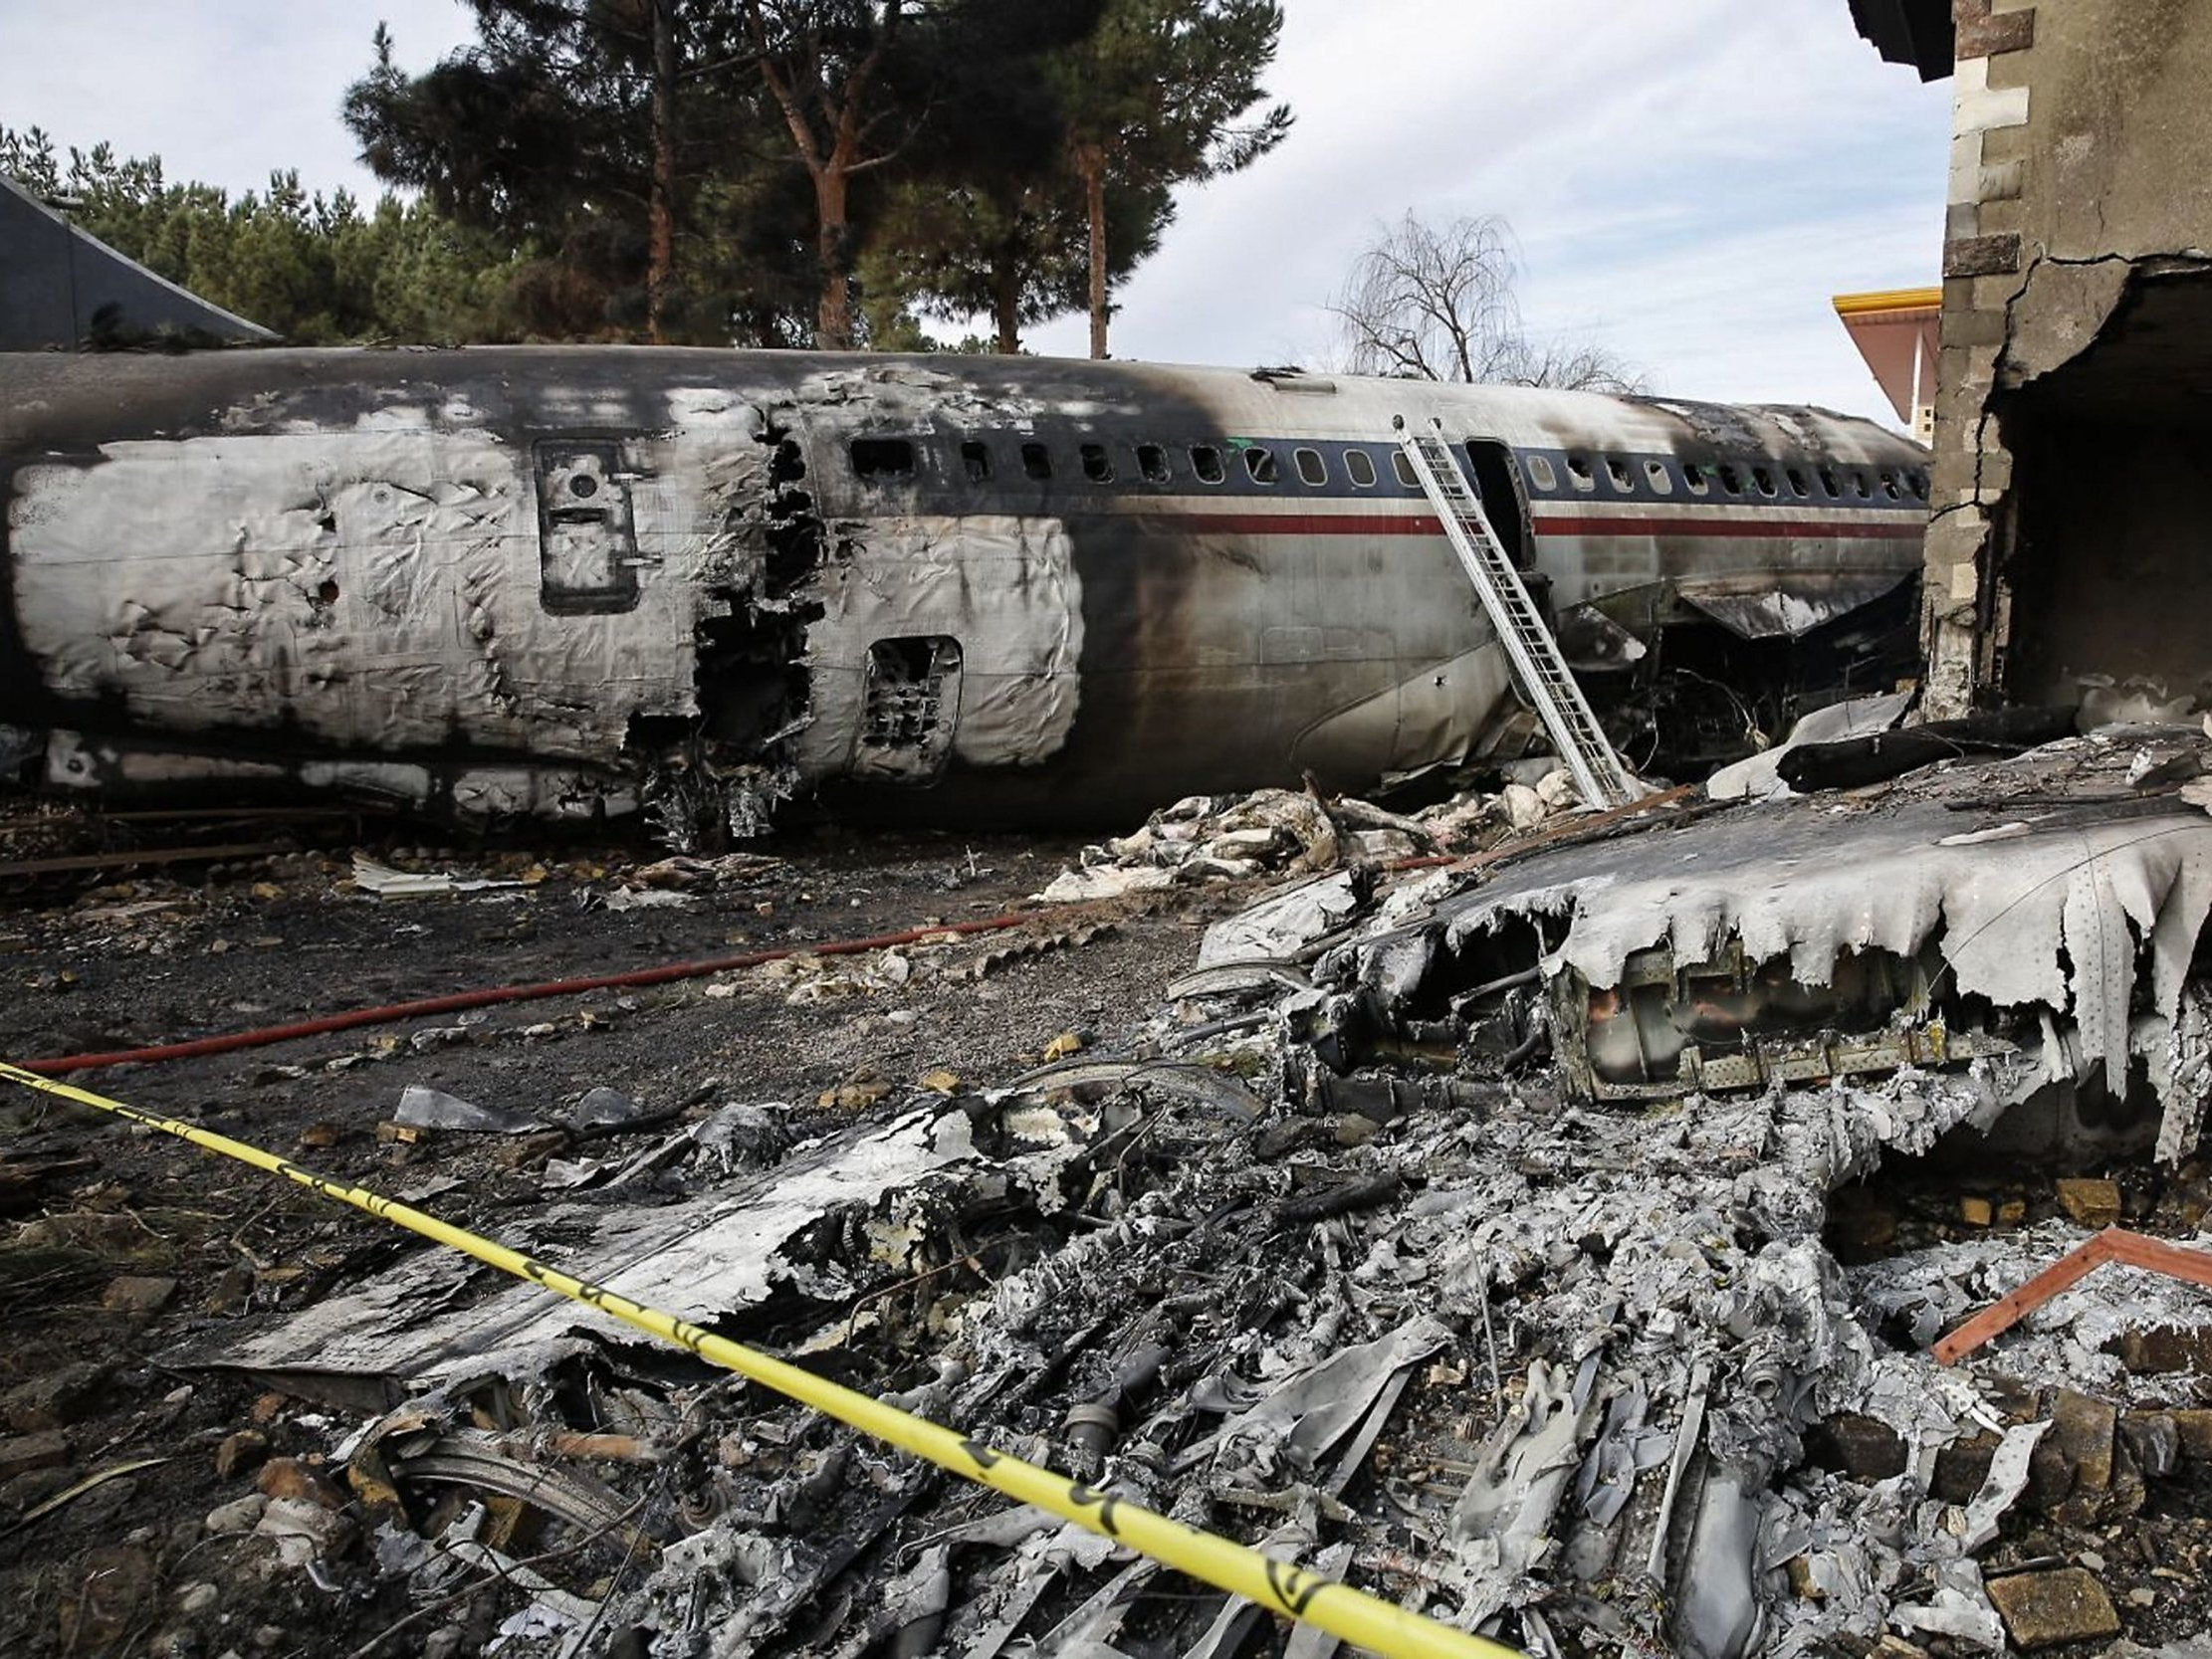 Iran plane crash: At least 15 killed after military cargo